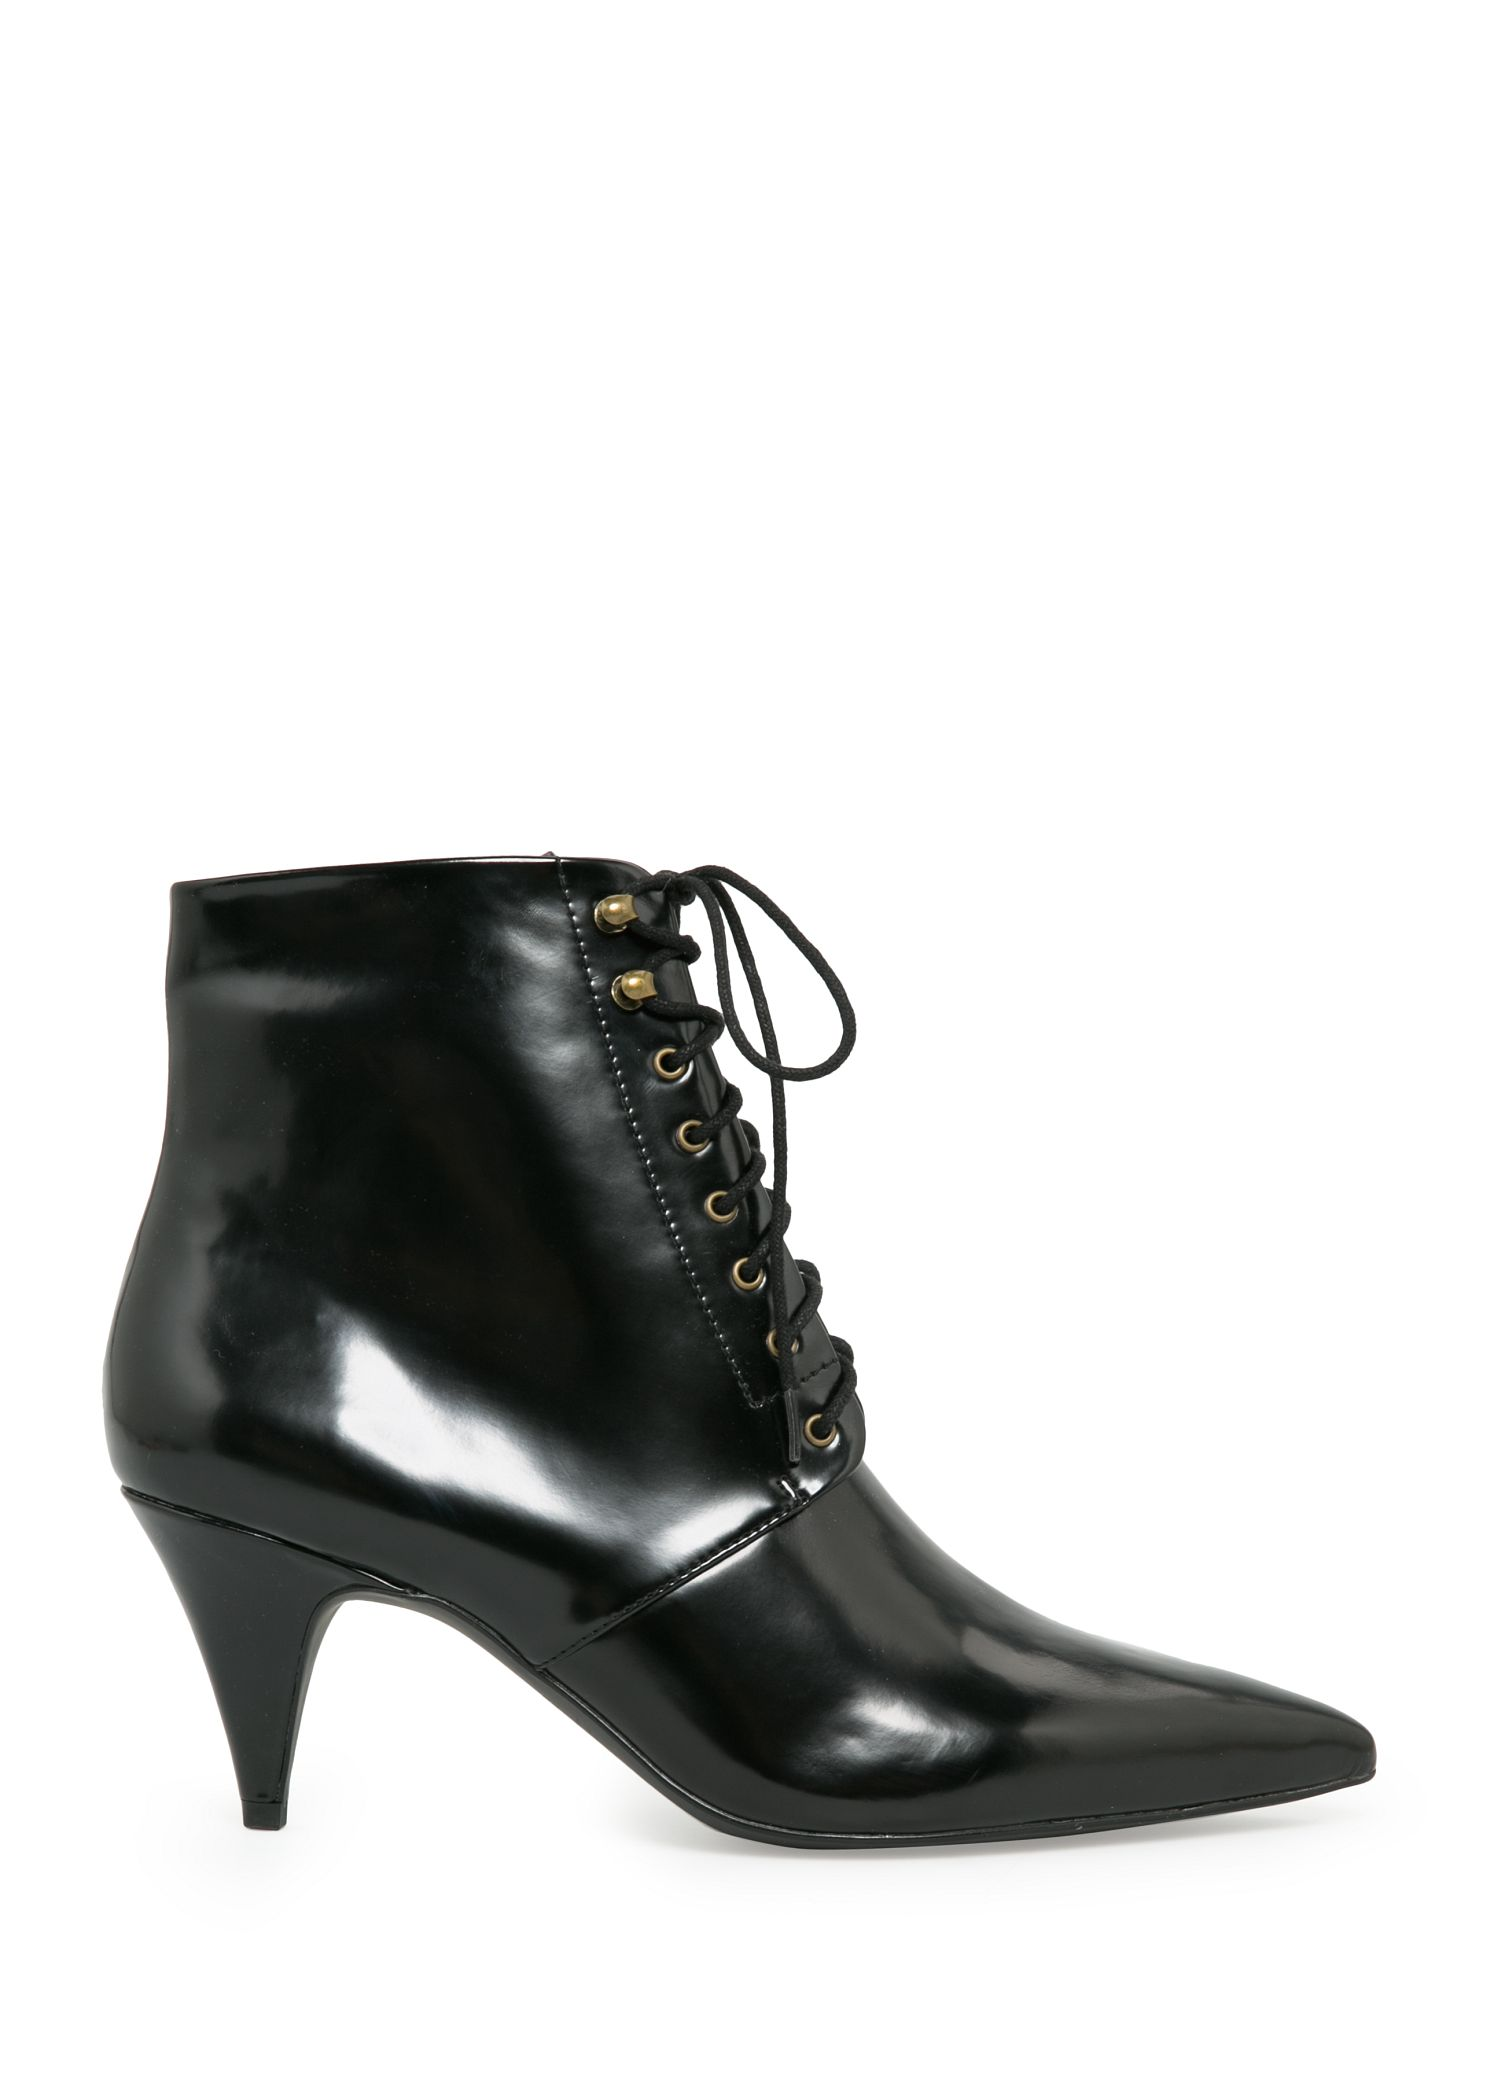 Up ankle boots